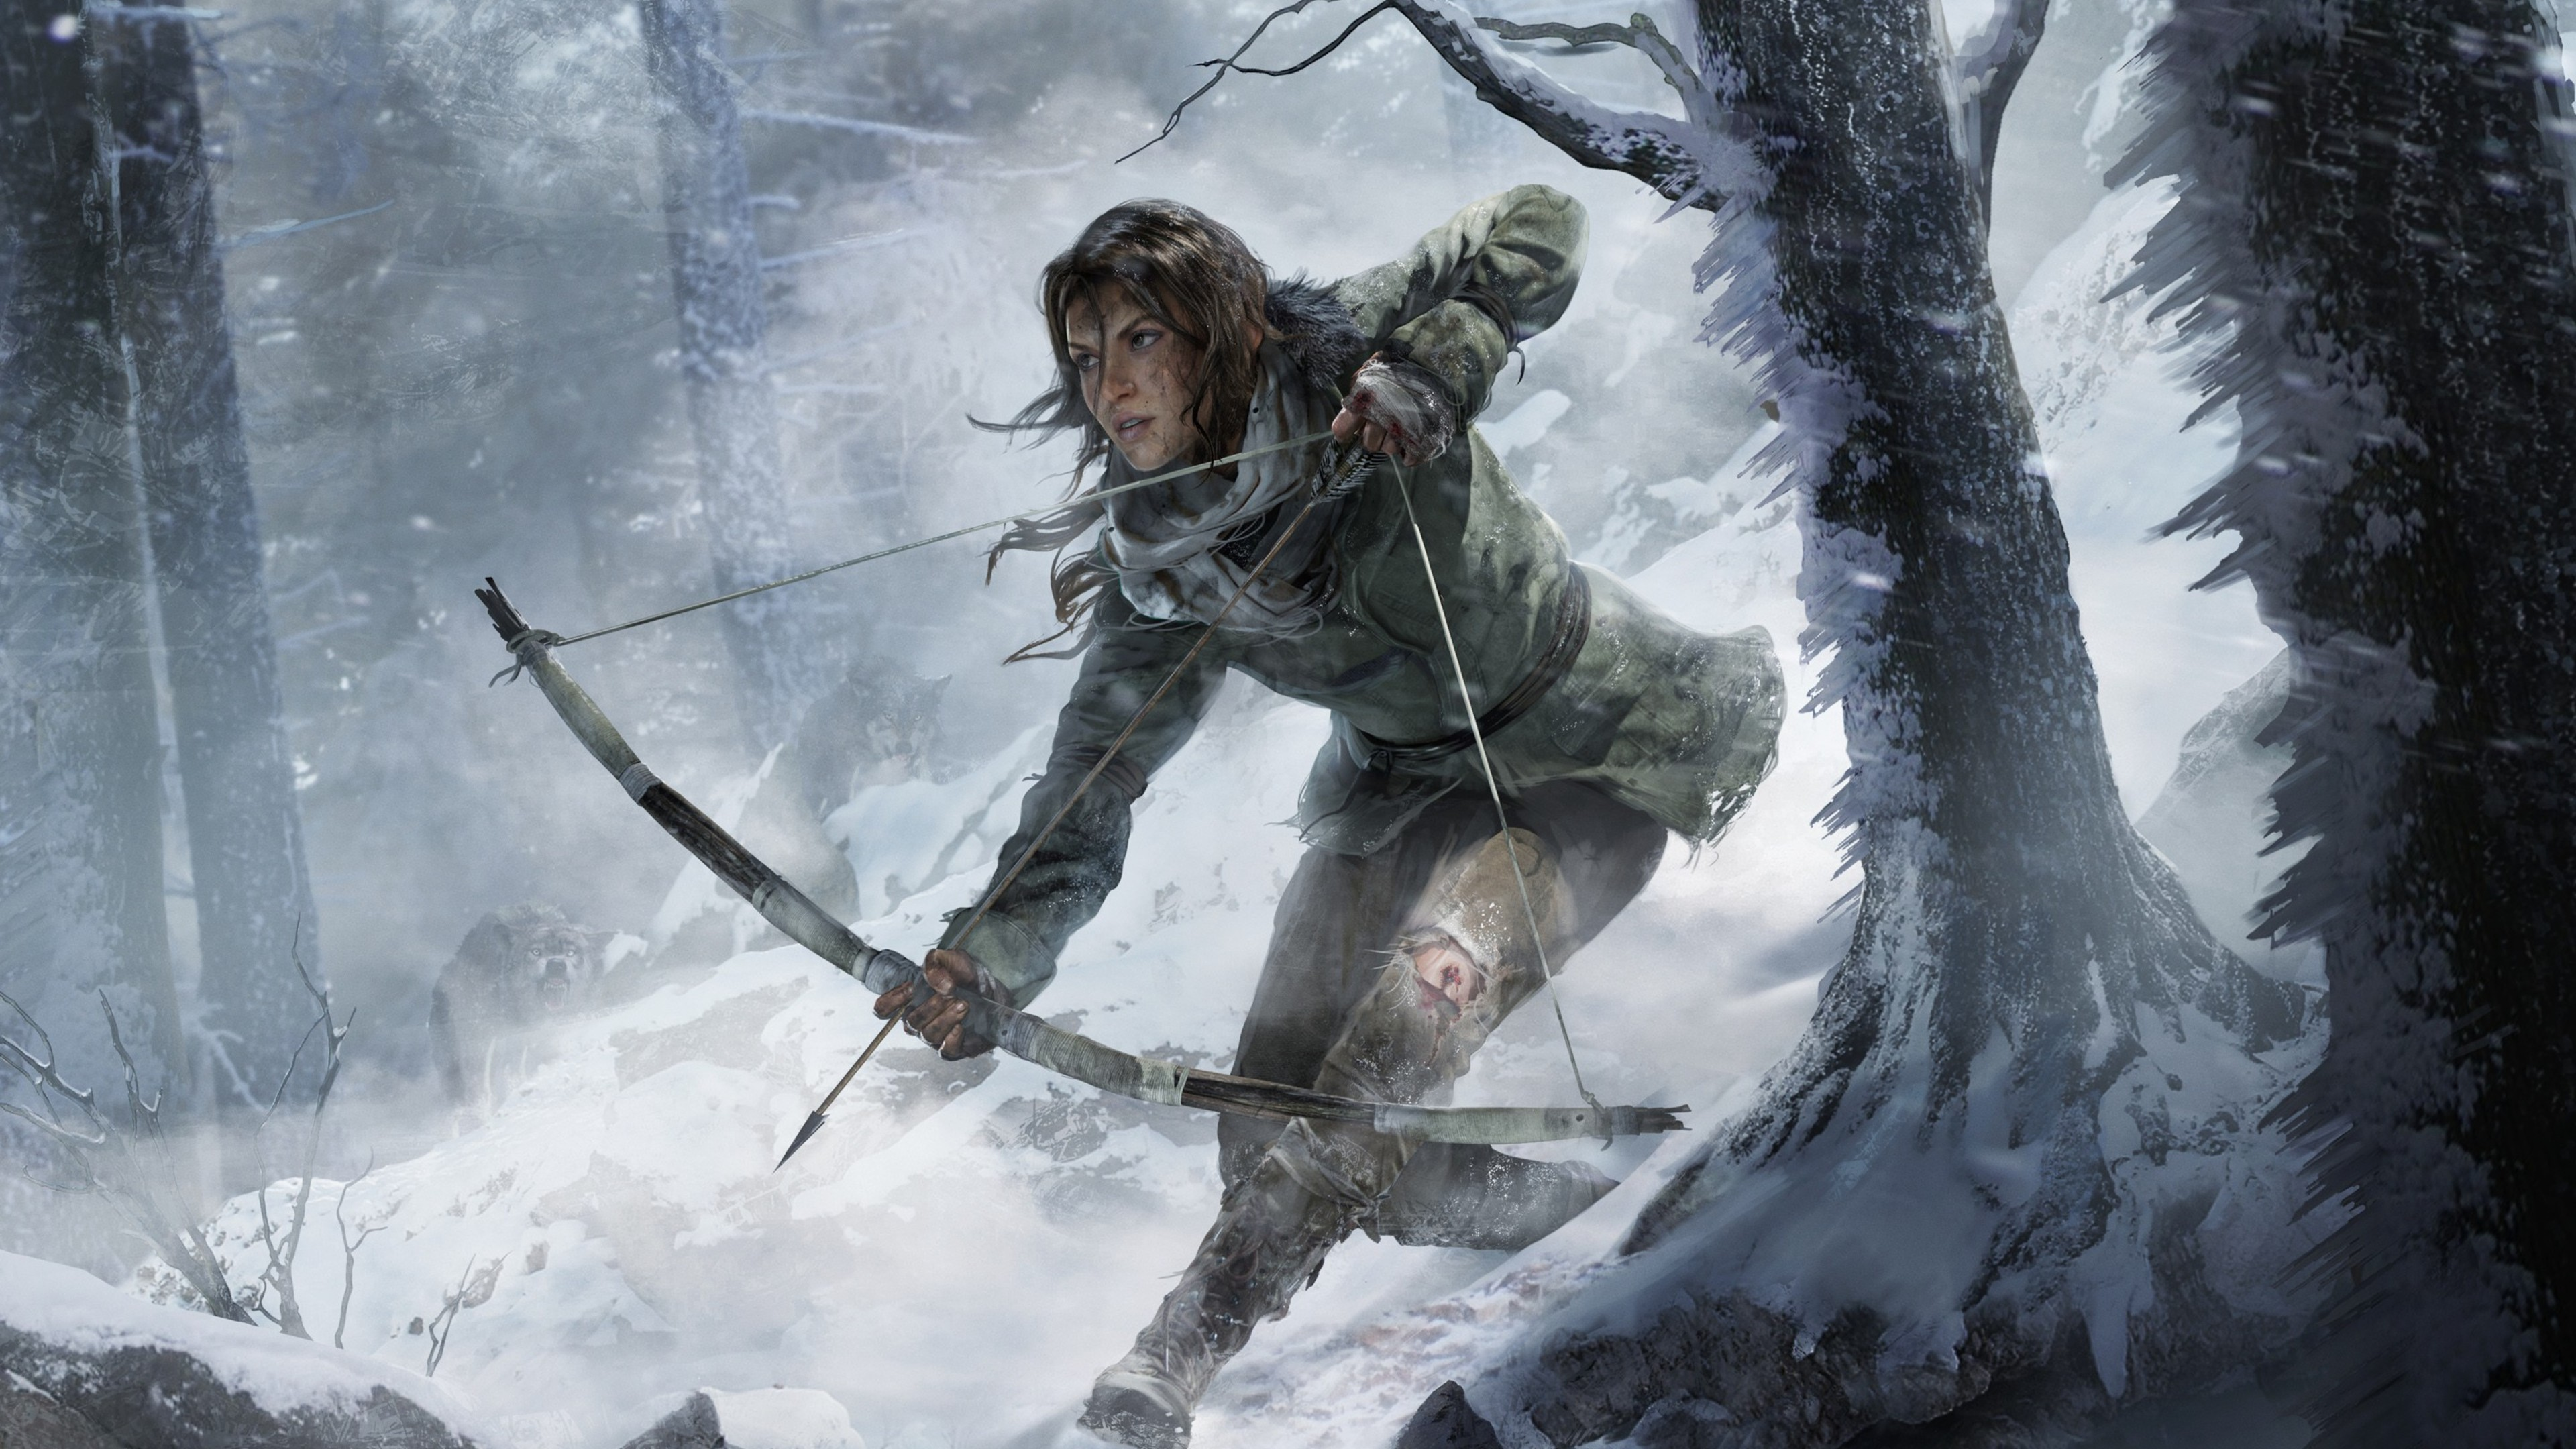 Rise of the tomb raider game 2016 hd games 4k wallpapers - Rise of the tomb raider 4k wallpaper ...